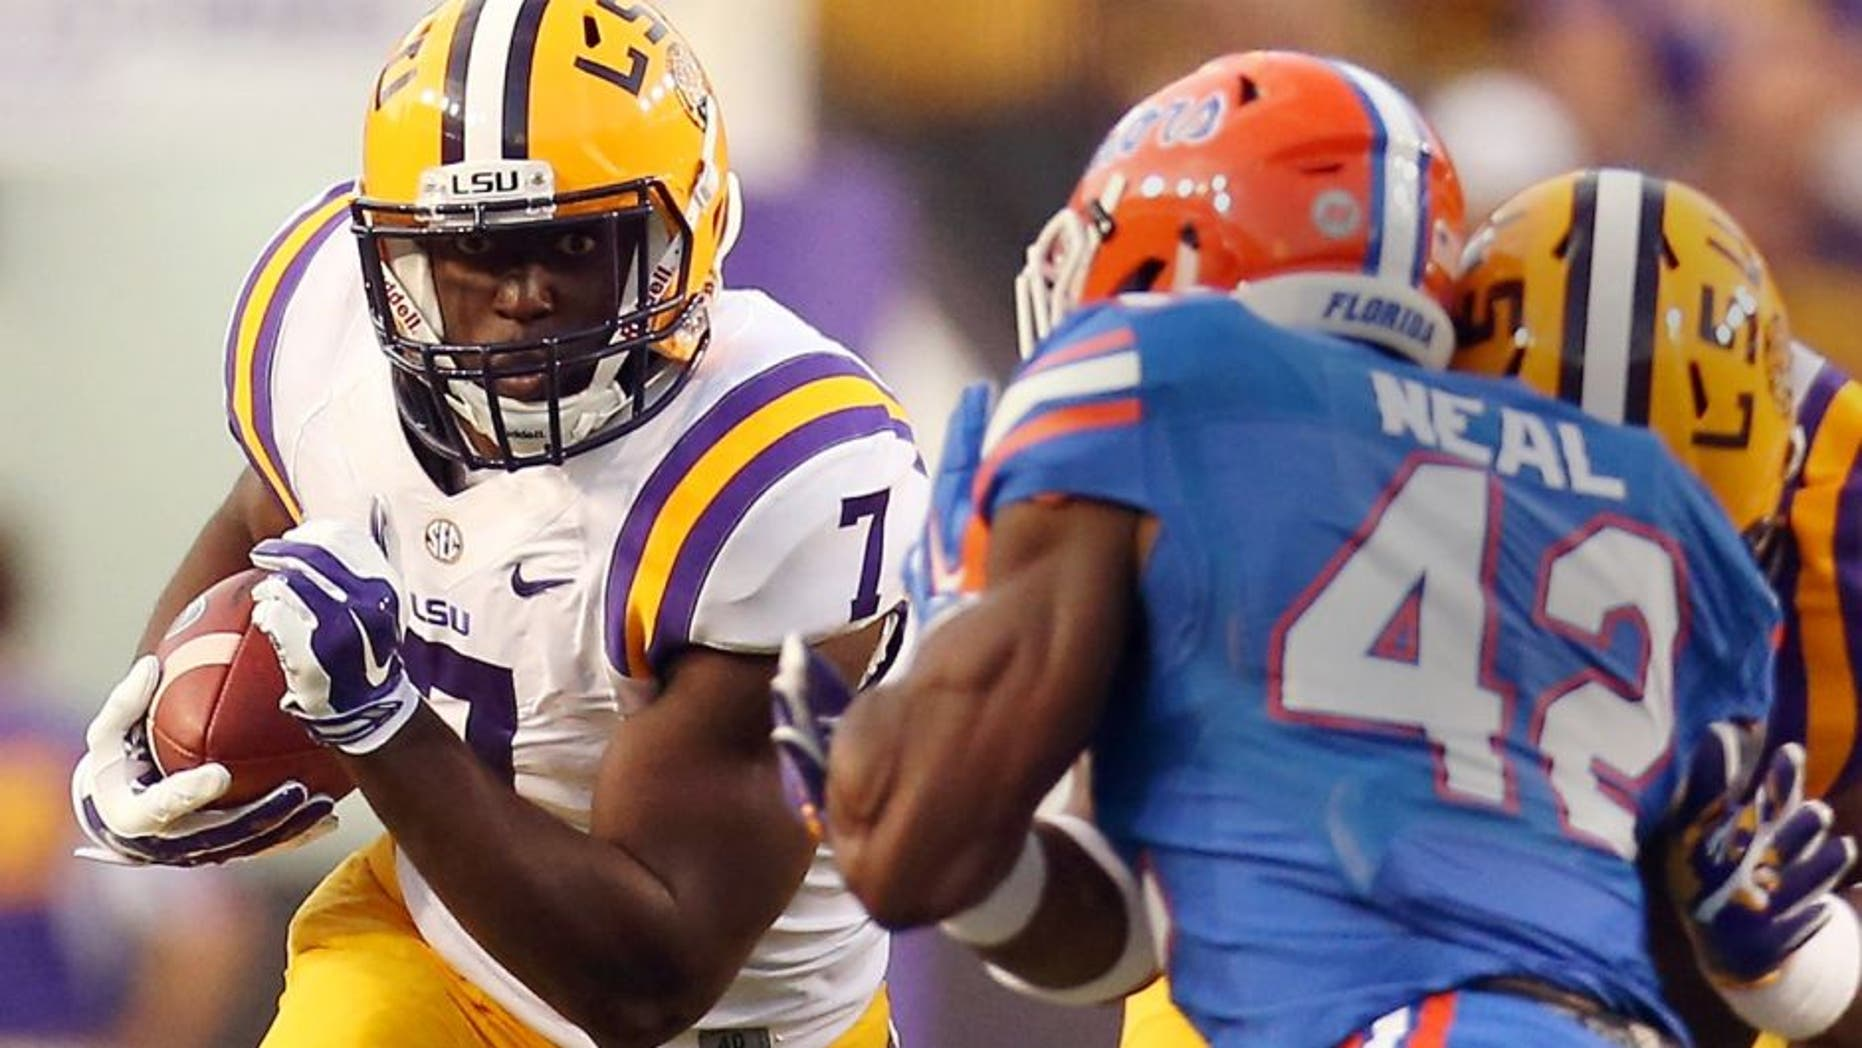 Leonard Fournette #7 of the LSU Tigers is tackled by Keanu Neal #42 of the Florida Gators at Tiger Stadium on October 17, 2015 in Baton Rouge, Louisiana. (Photo by Chris Graythen/Getty Images)